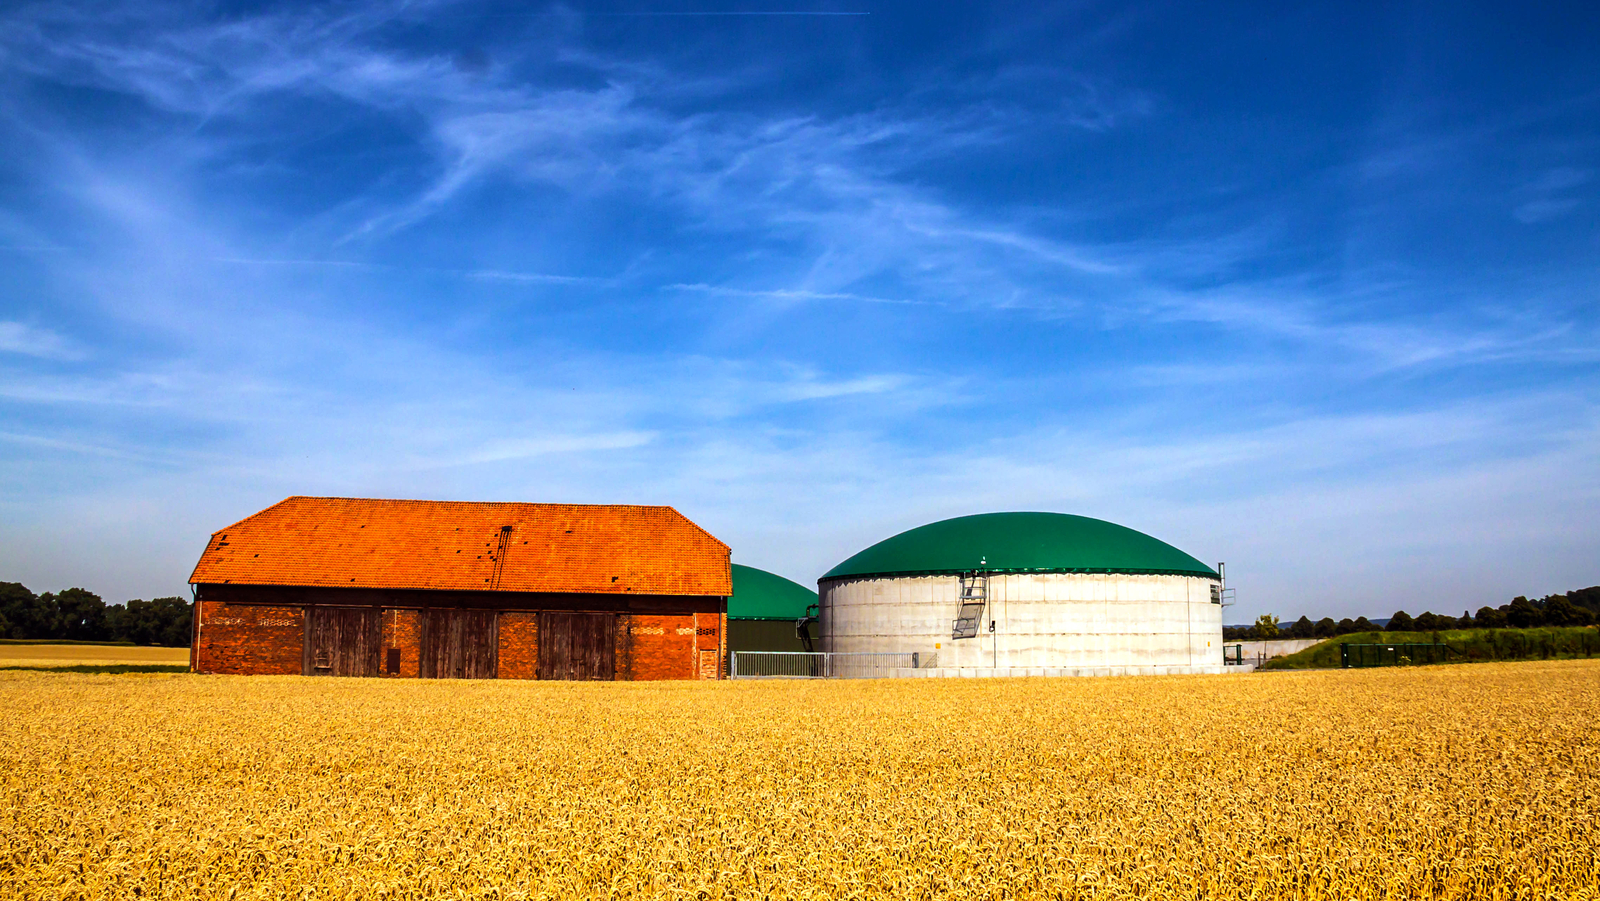 Biogas plant and barn in field